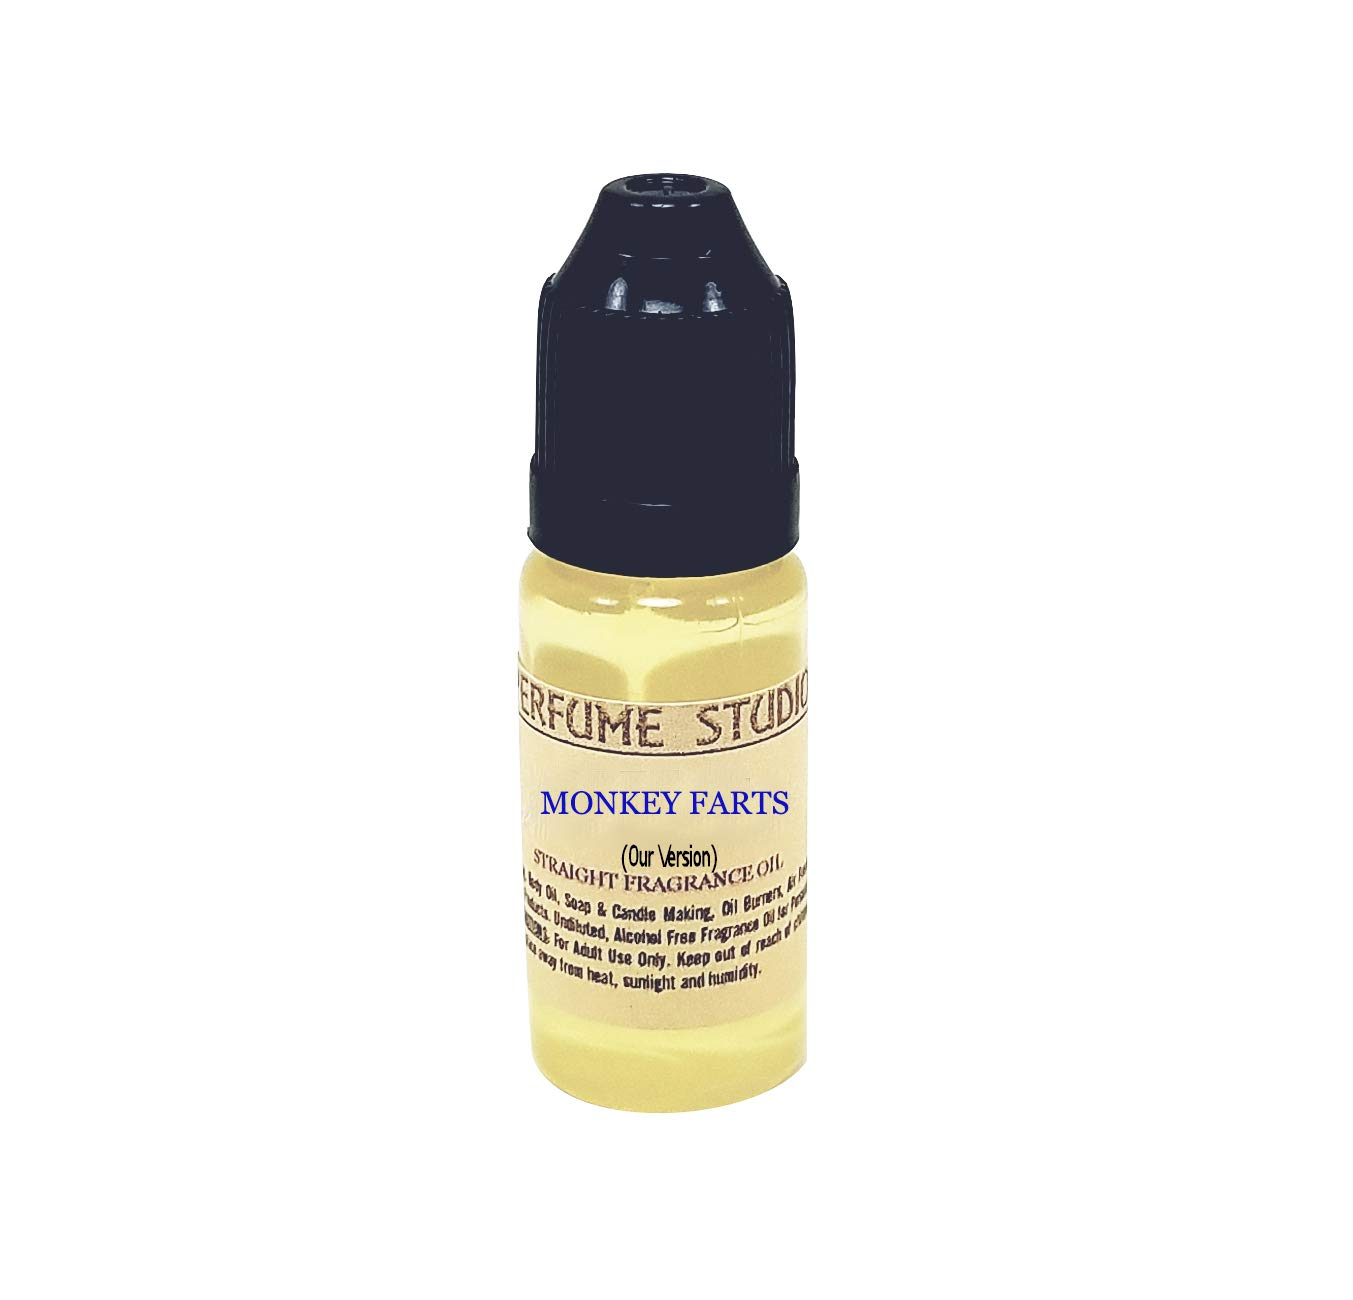 Premium Fragrance Oil for Soap, Candle, Perfume Making, Burners, Lotion, Air Fresheners, Body Mists, Incense, Hair & Skincare Products. Pure Parfum; 12ml – Our Version of (Monkey Farts)